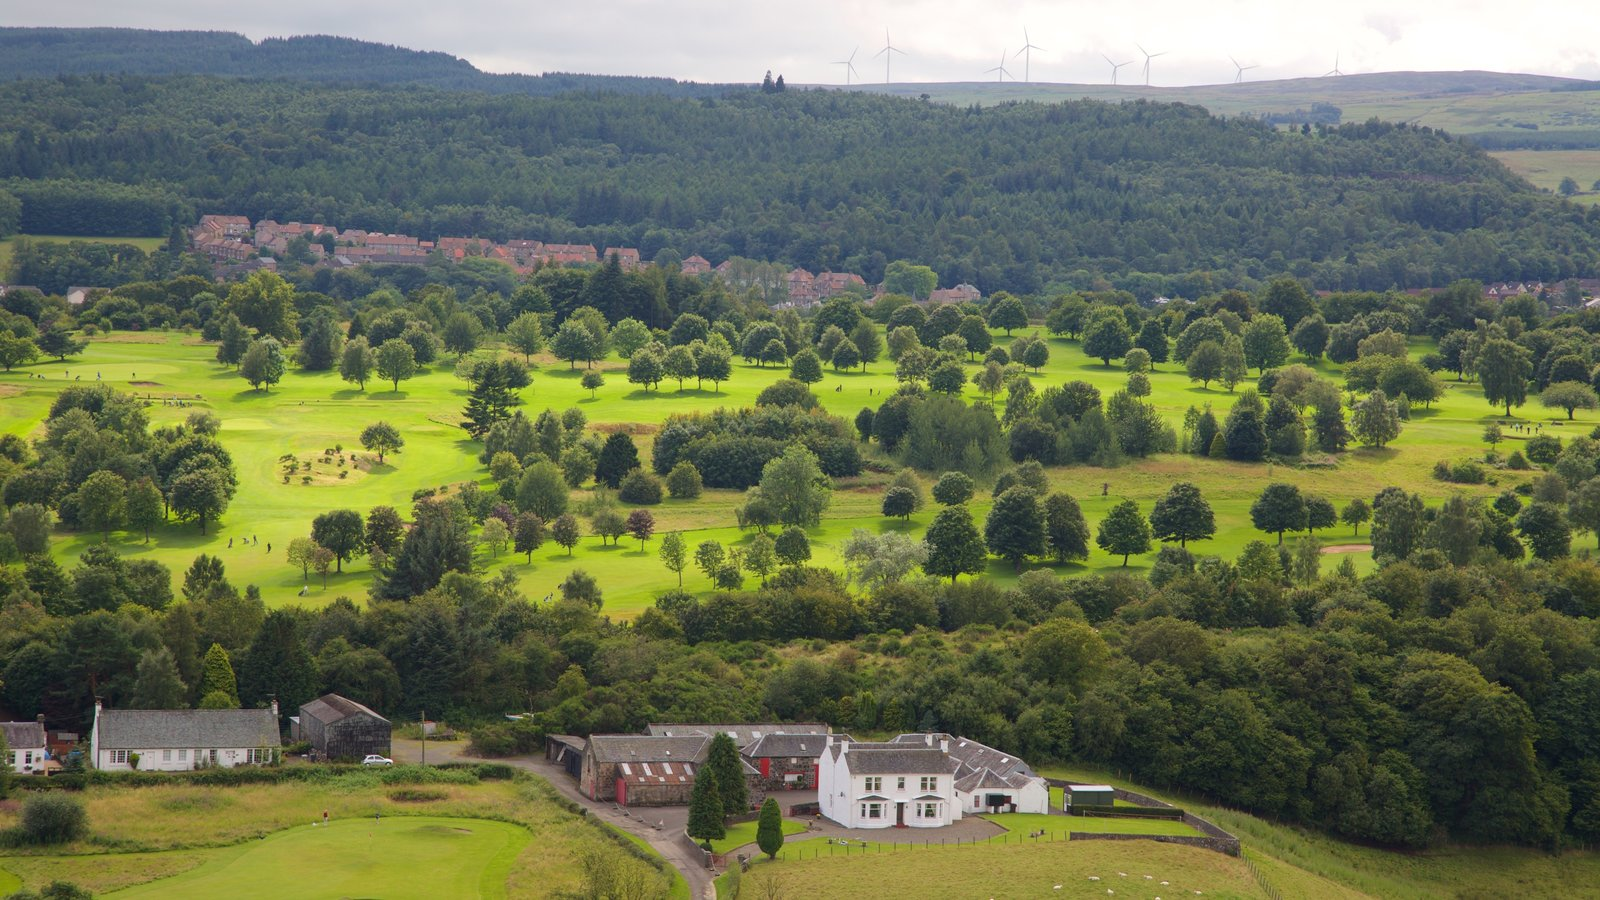 Stirling featuring forest scenes and farmland